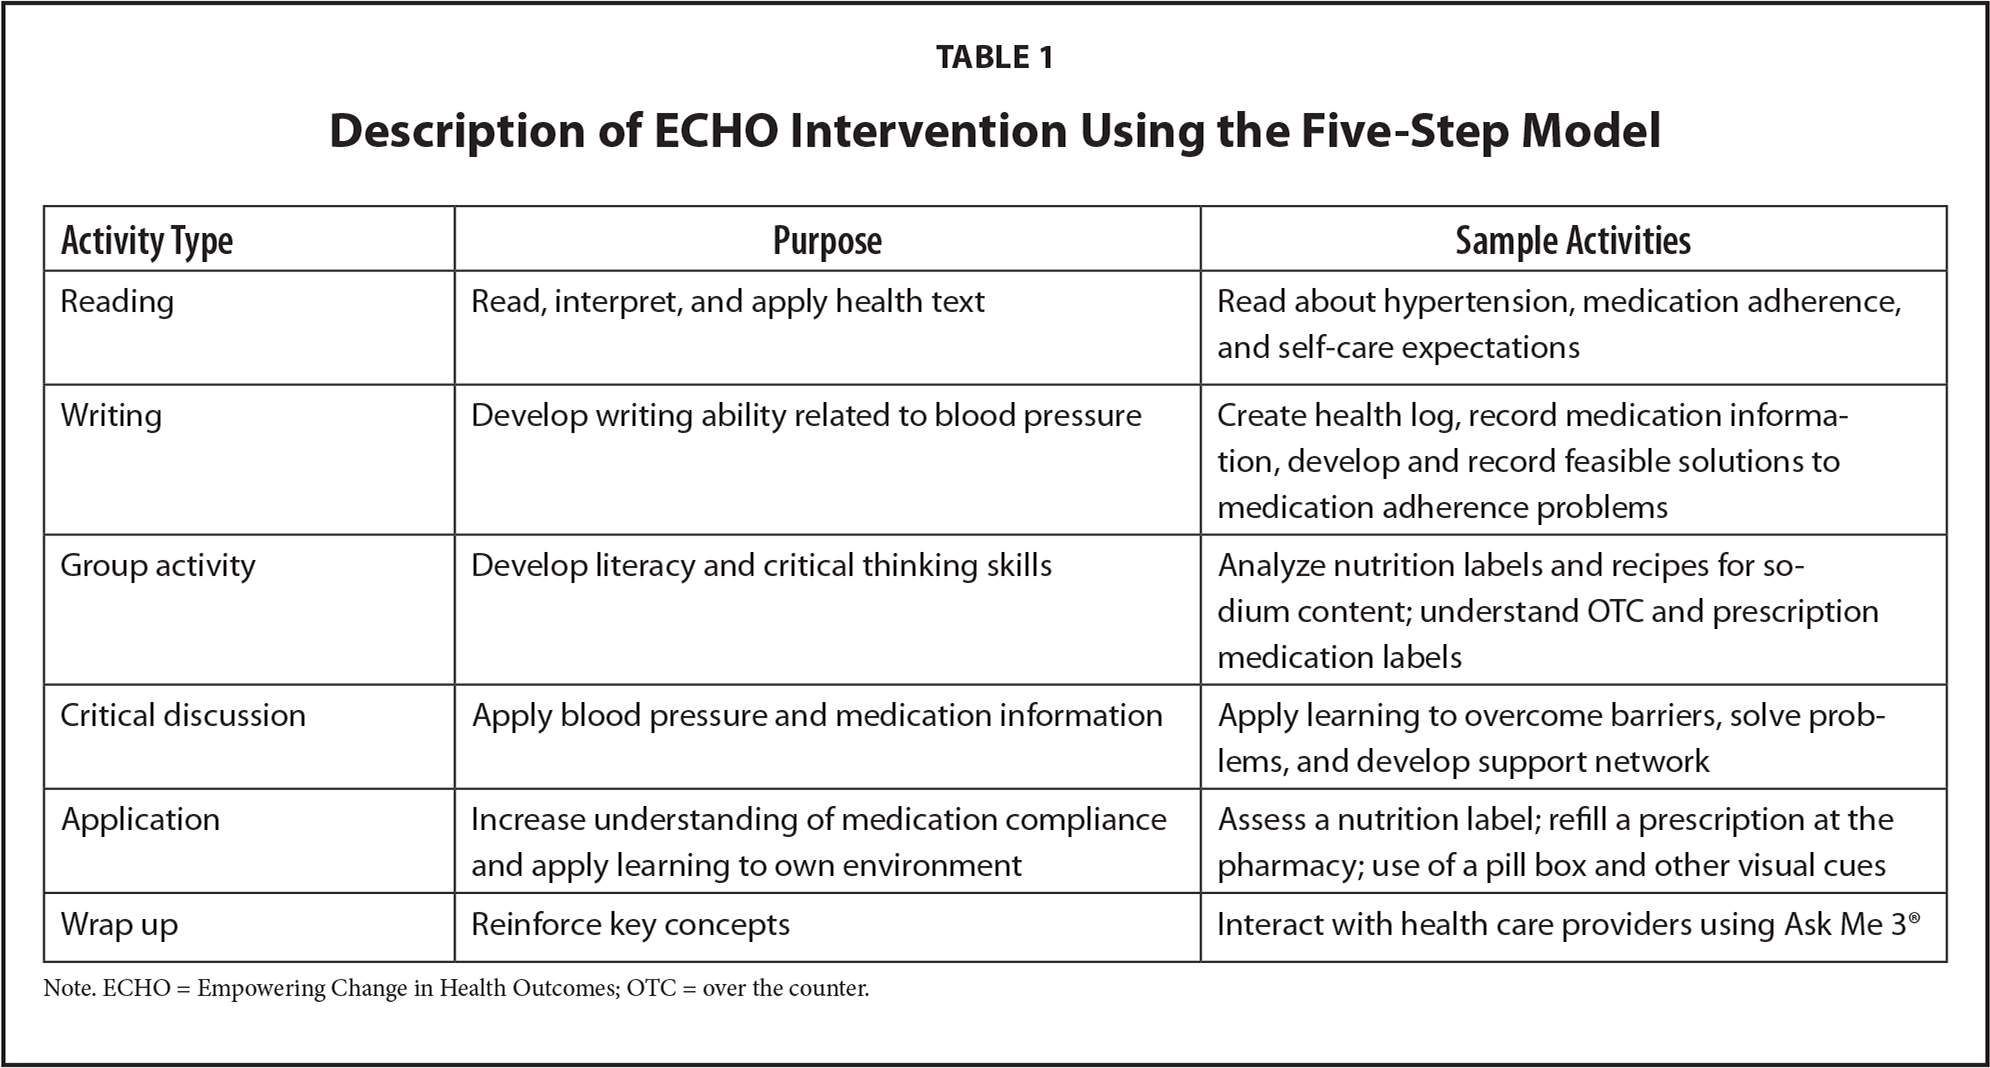 Description of ECHO Intervention Using the Five-Step Model